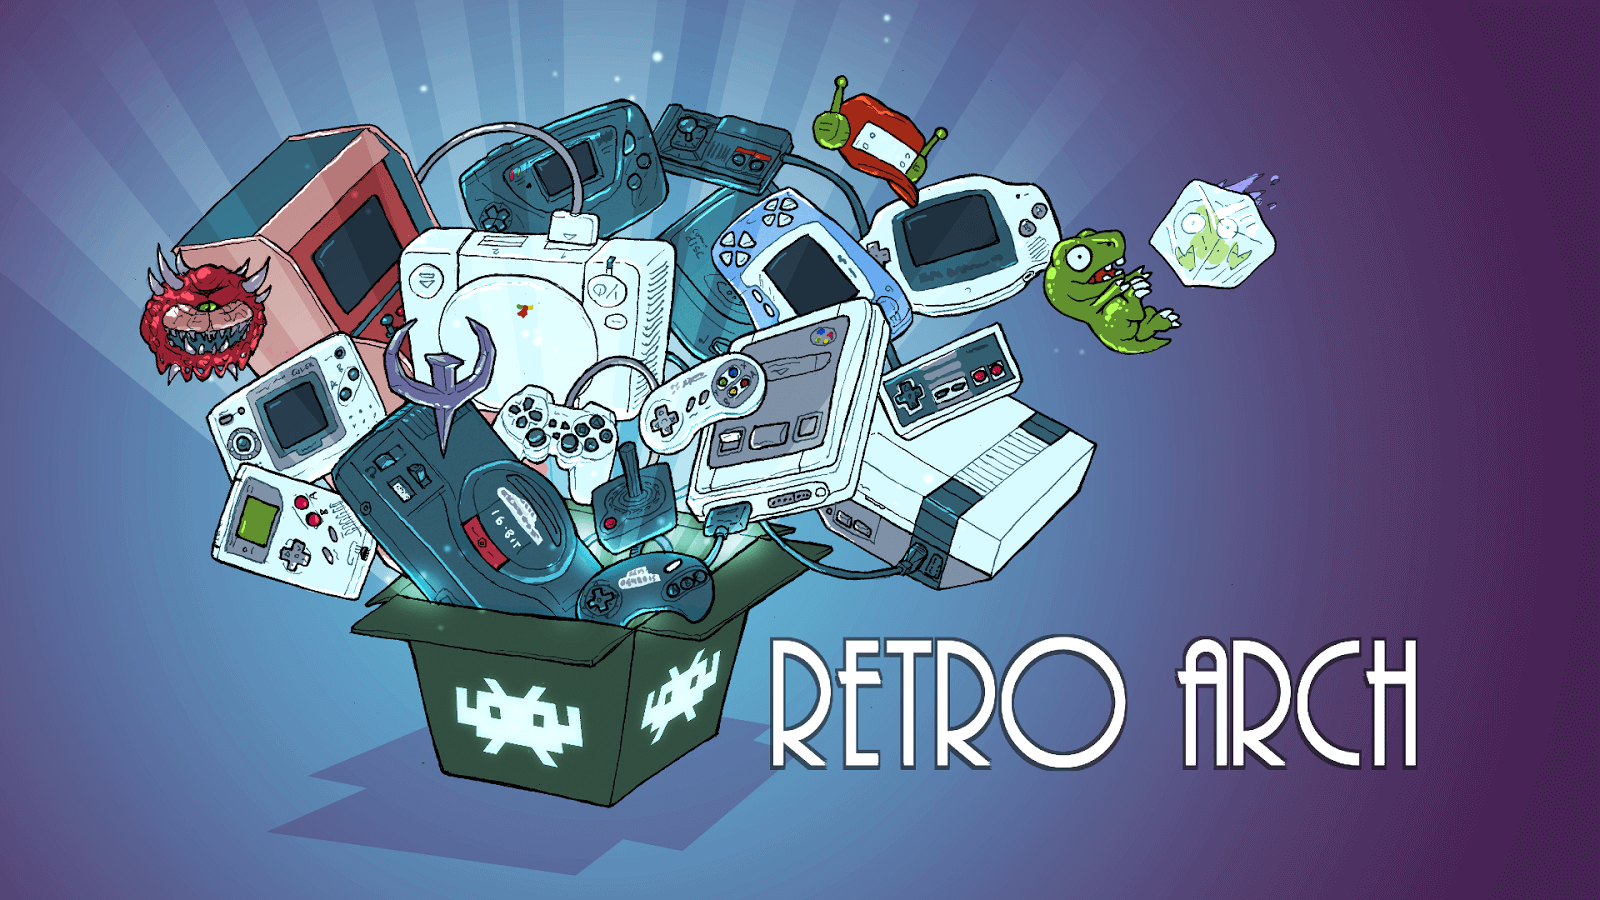 PS3 - RetroArch 1 6 0 Released - PS3 Version is back & New Vita